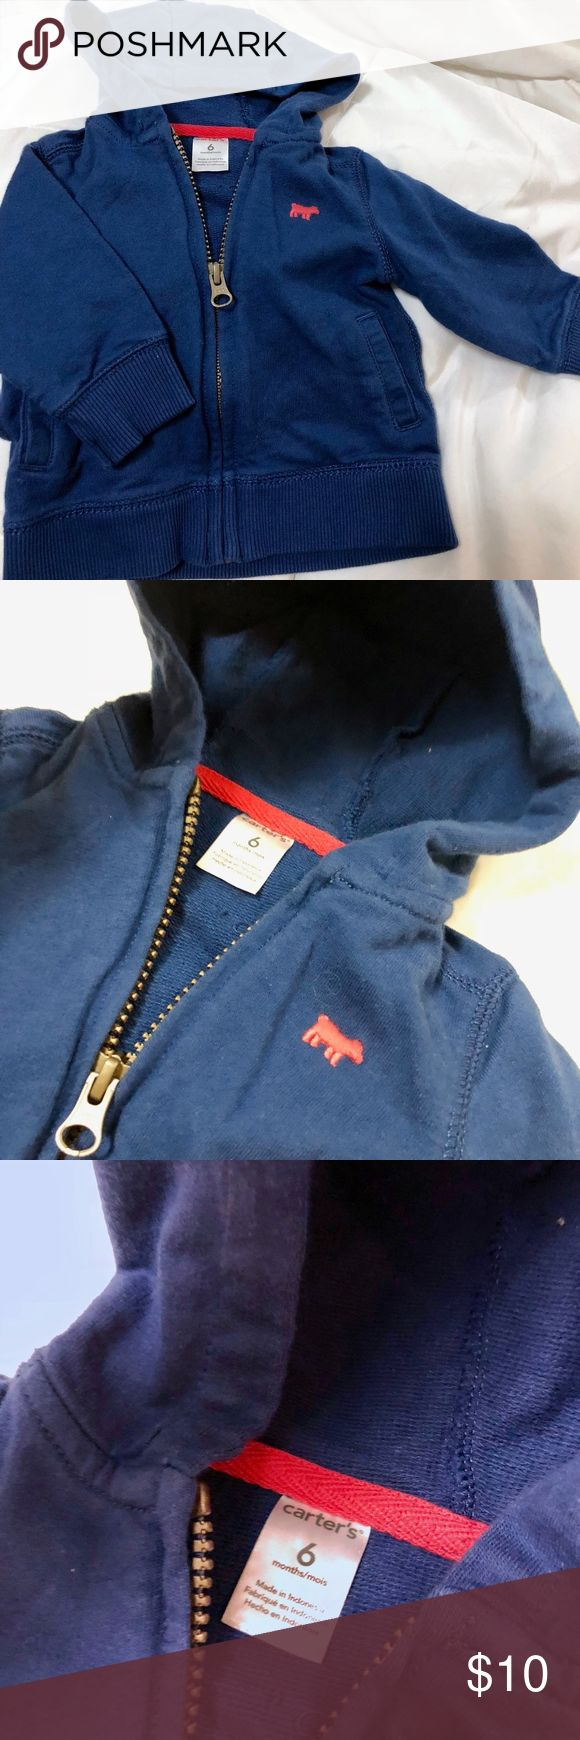 baby boy's Blue zip up hoodie size 6 months from carters. the second photo depicts the truest reflection of the item's color. zip up sweatshirt. Carter's Shirts & Tops Sweatshirts & Hoodies